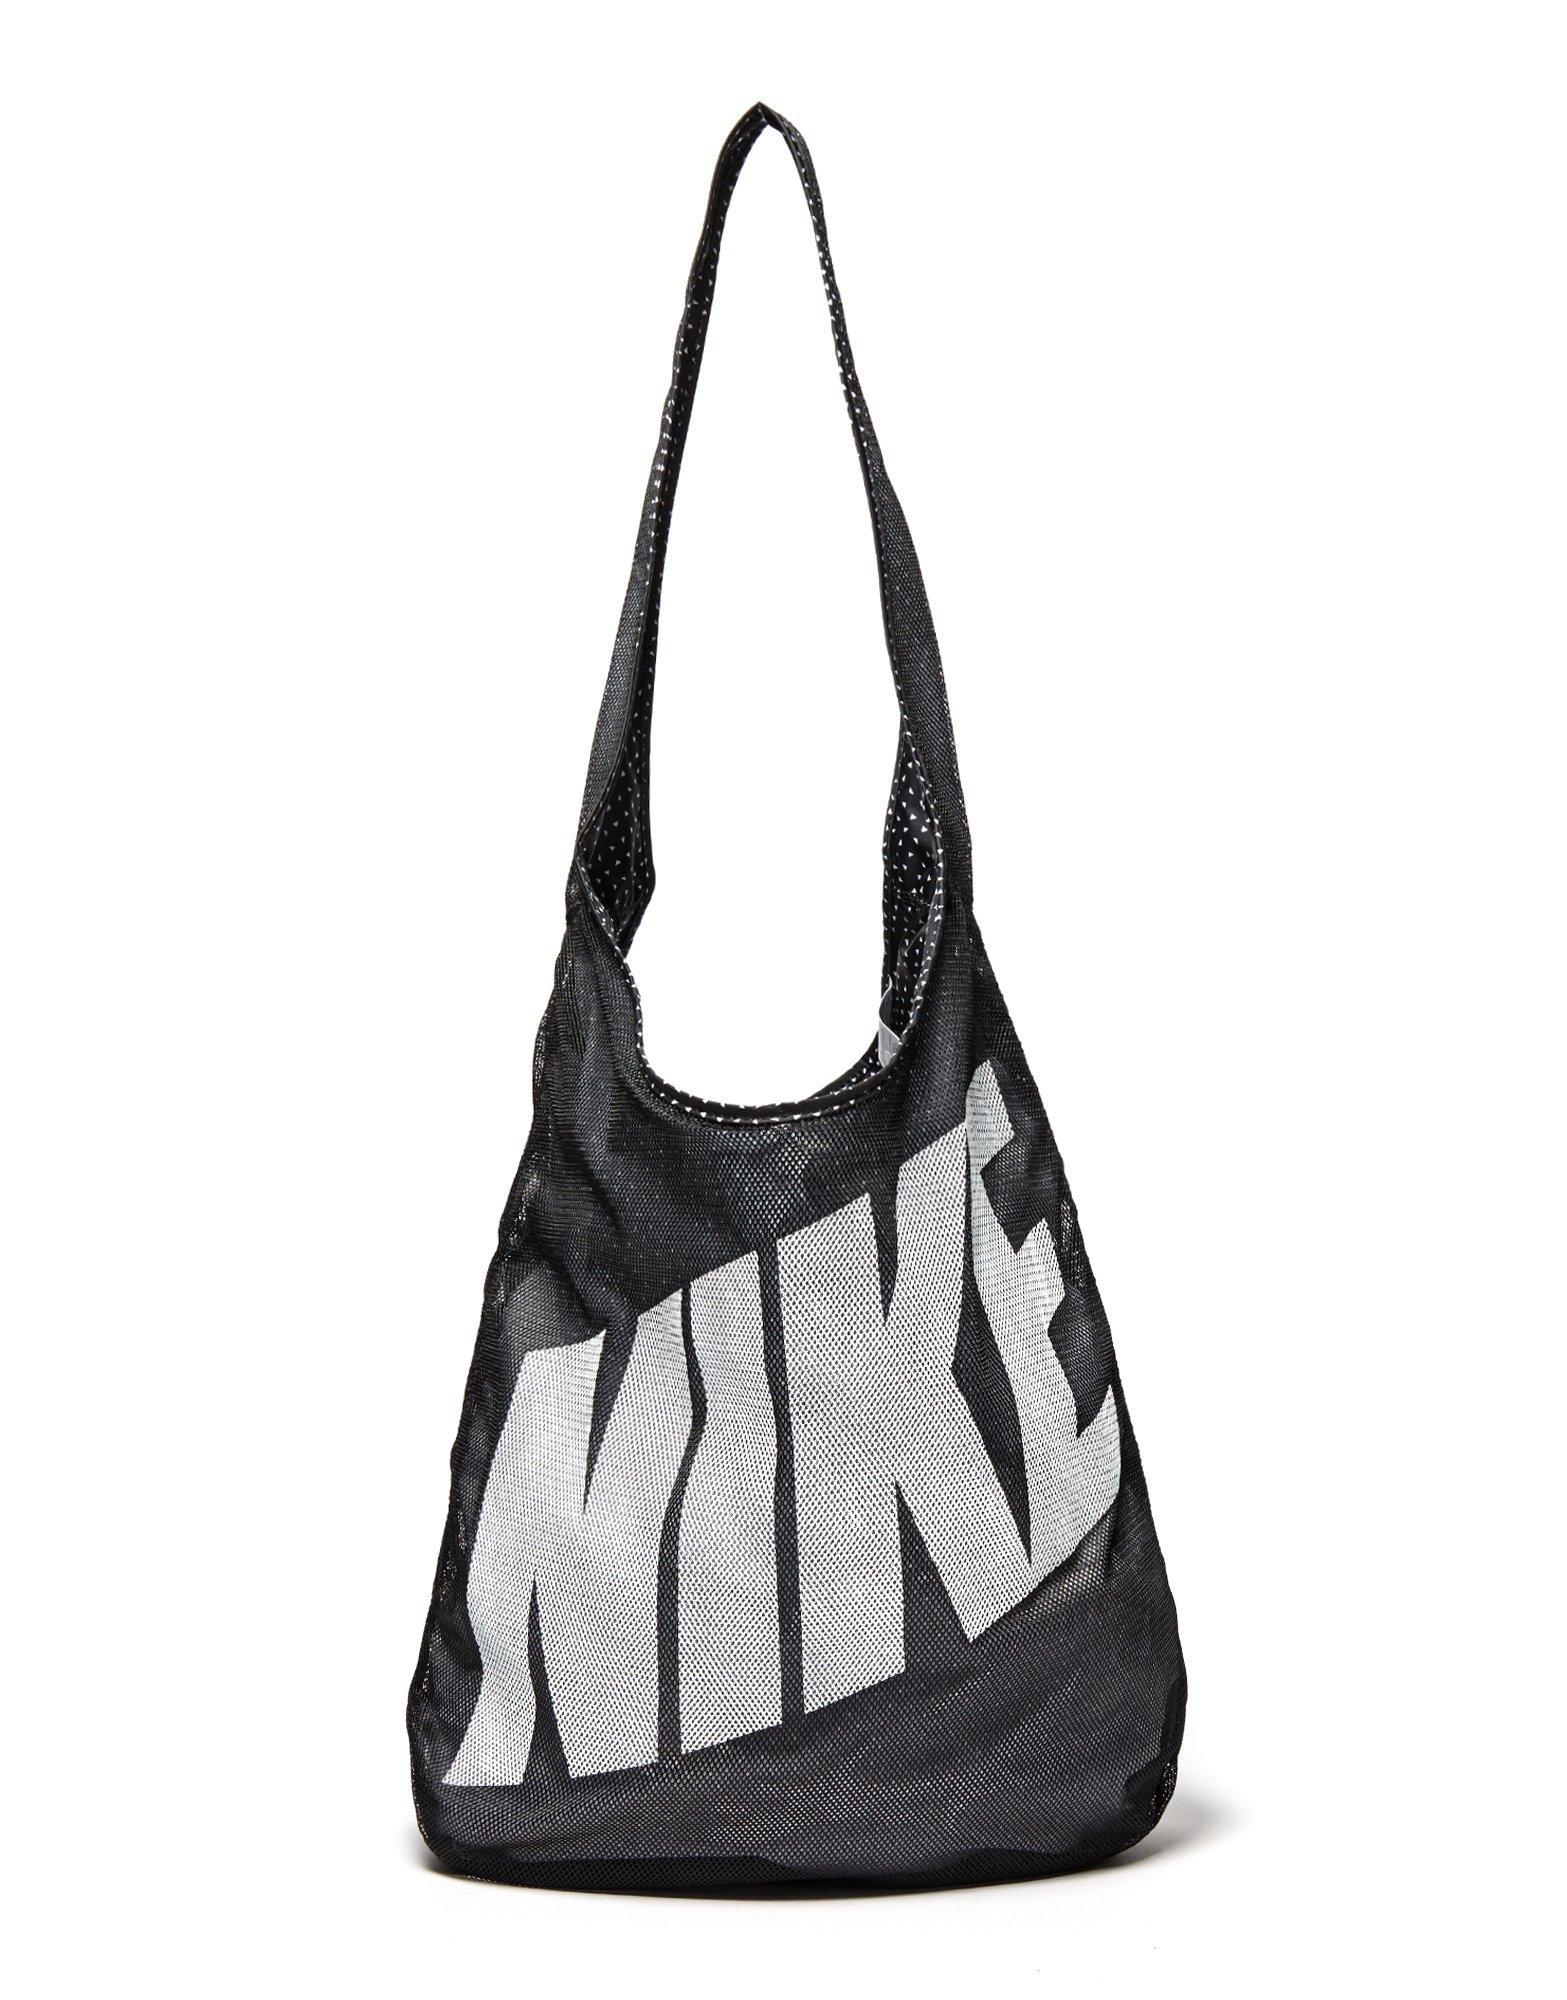 4503001ce2 Gallery. Previously sold at  JD Sports · Women s Reversible Bags ...